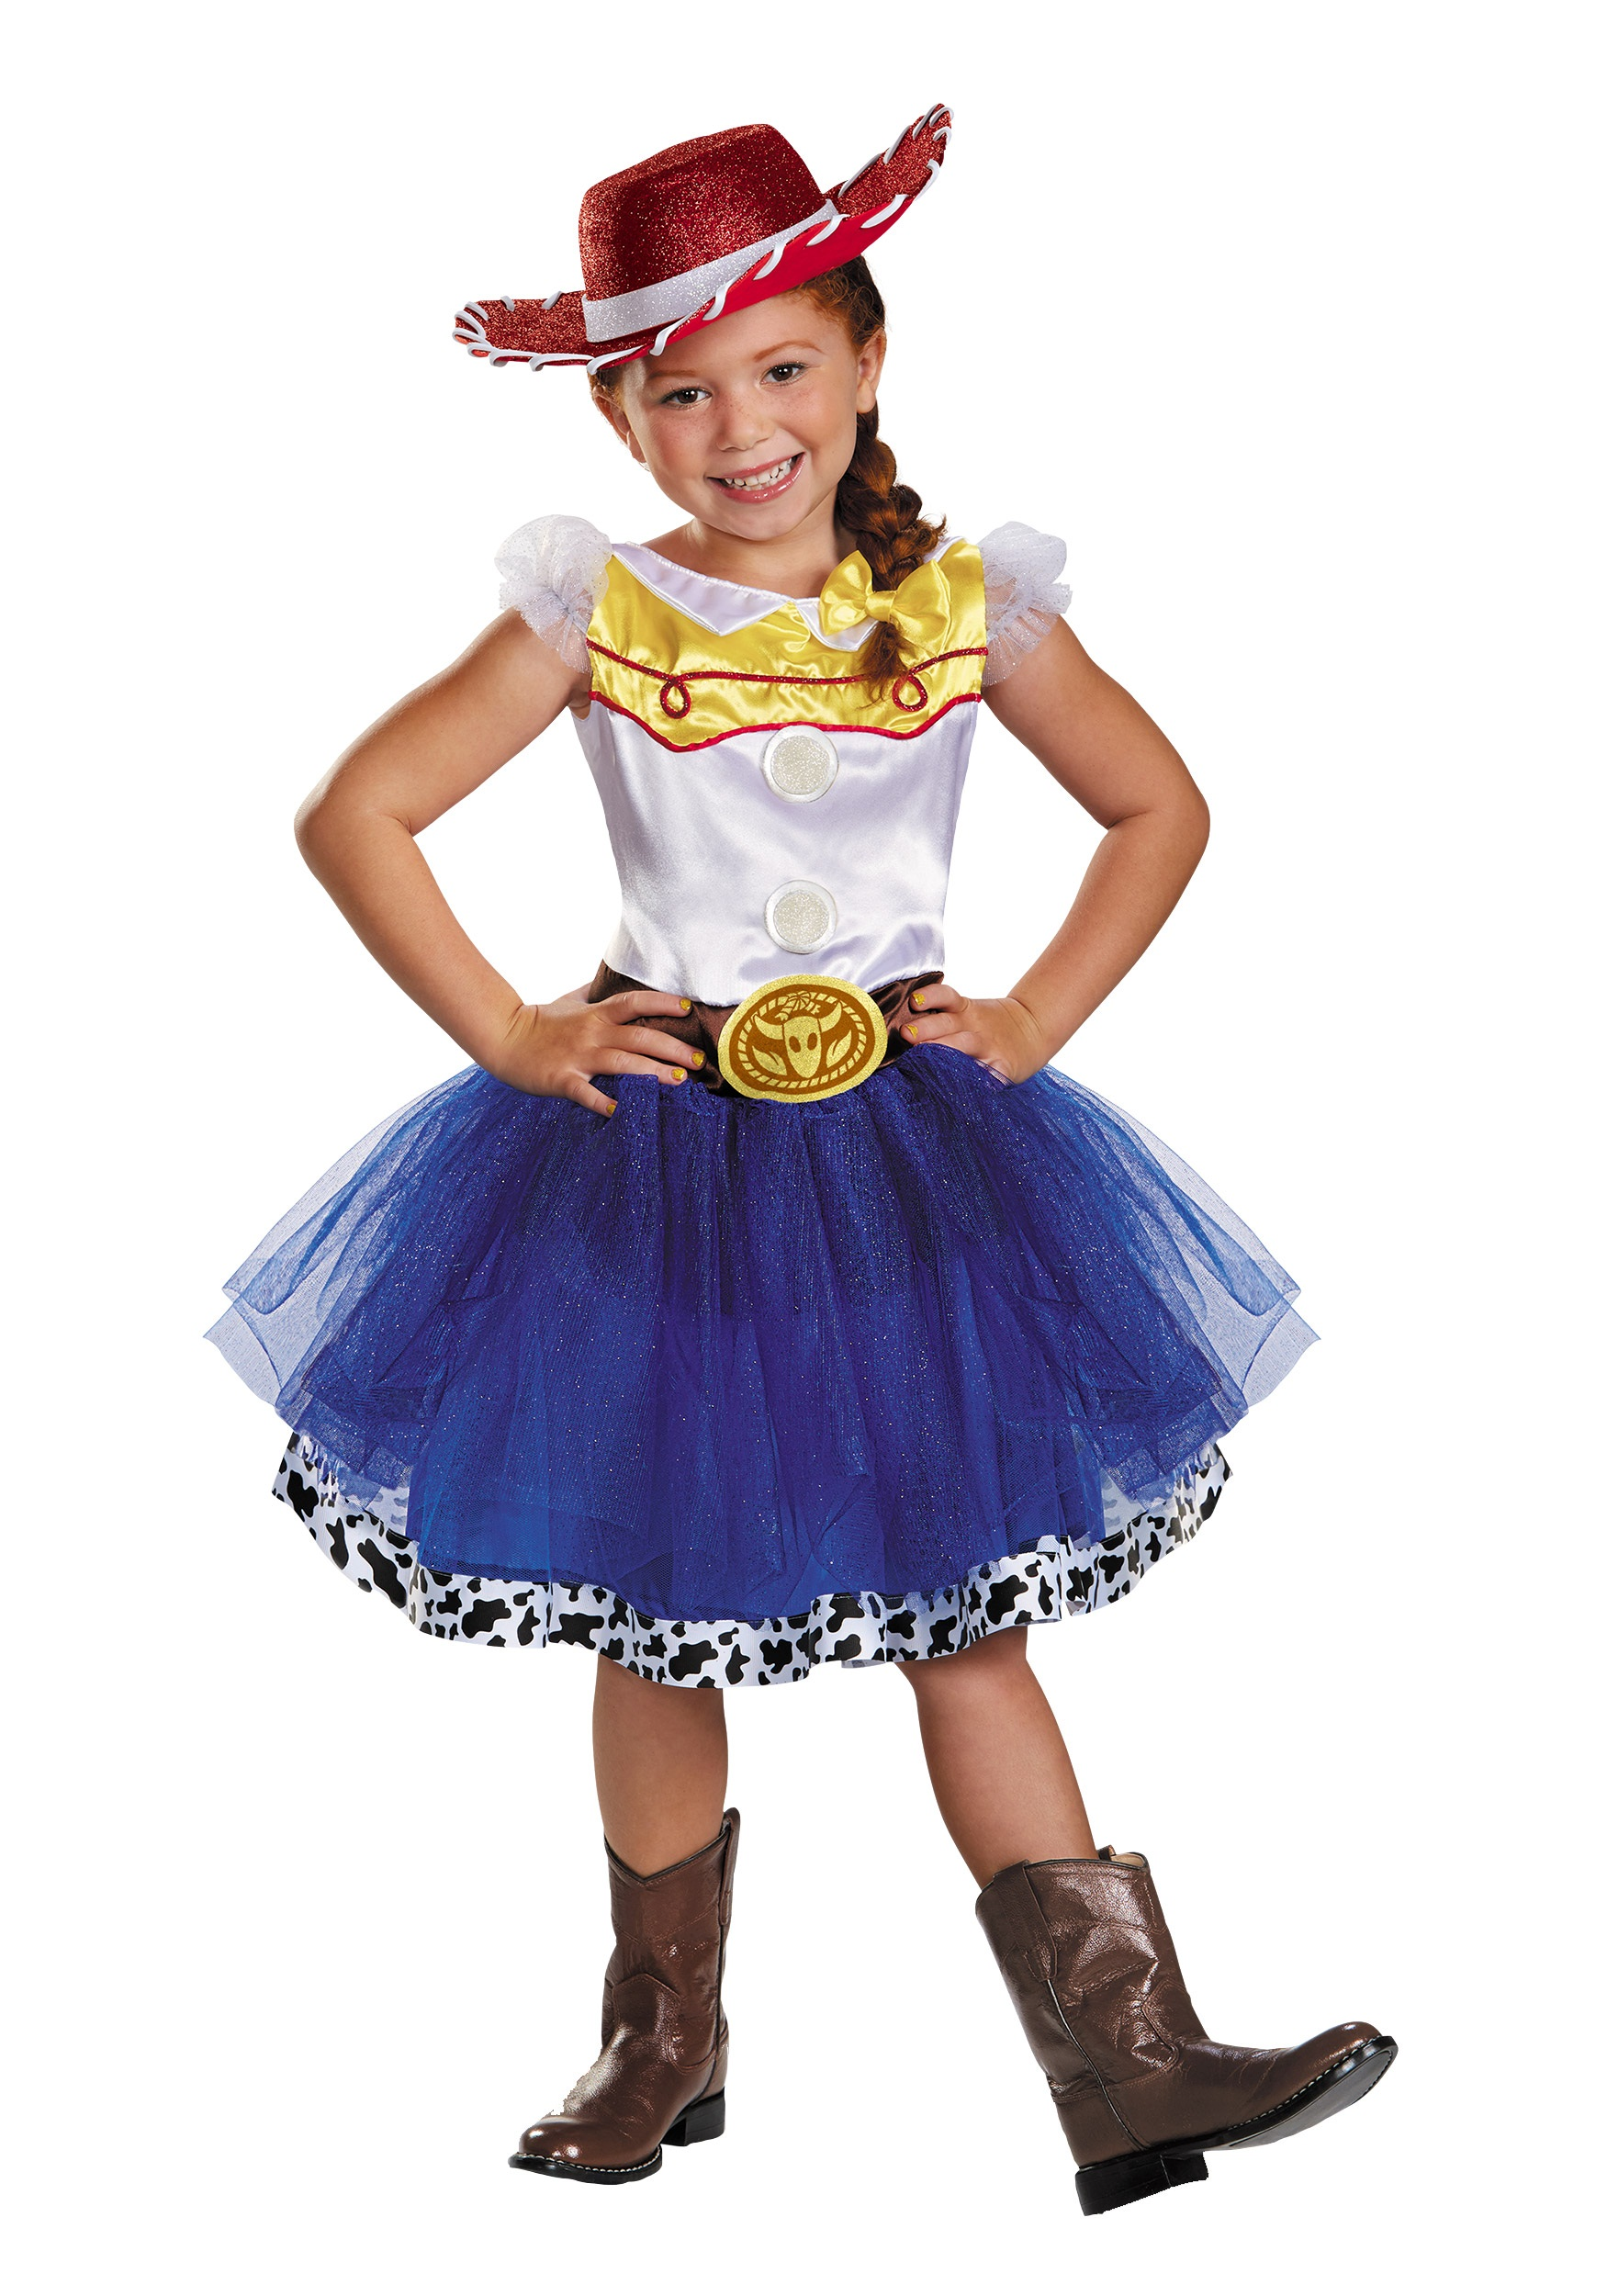 back todisney costumes girl costumes kids costumes new 2018 costumes theme costumes toy story costumes tv movie costumes